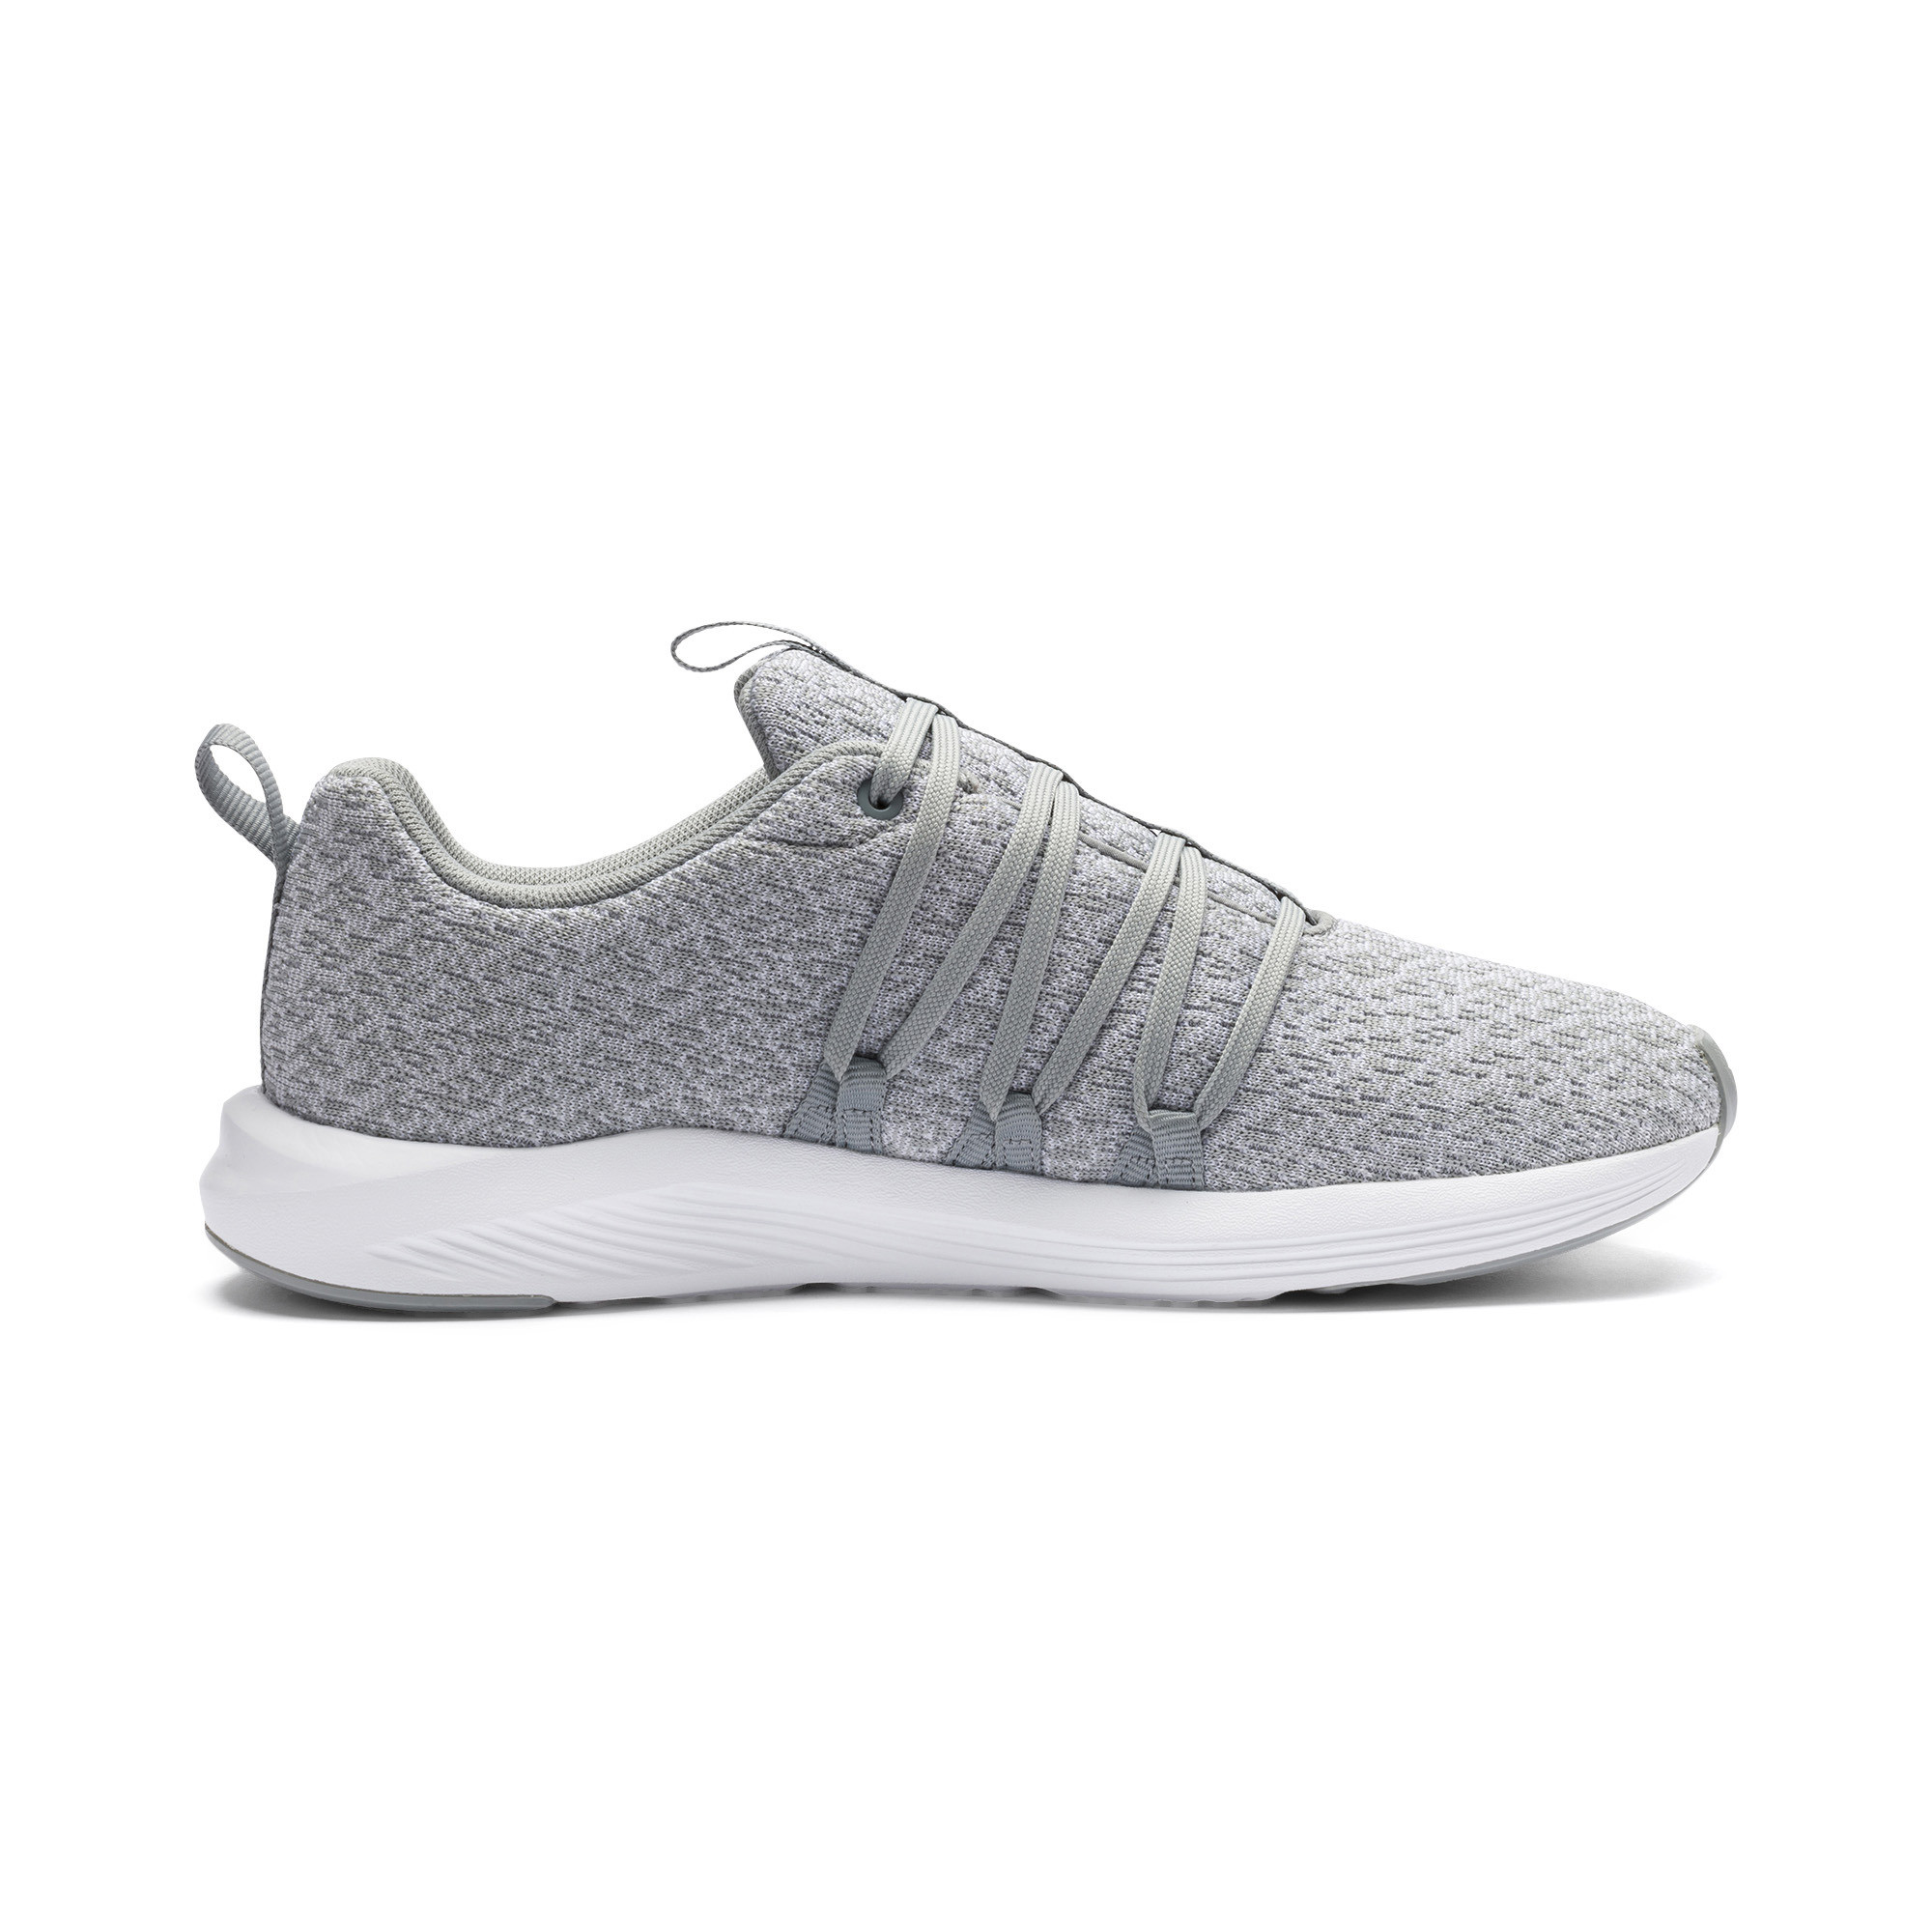 PUMA-Prowl-Alt-Knit-Women-039-s-Training-Shoes-Women-Shoe-Training thumbnail 12